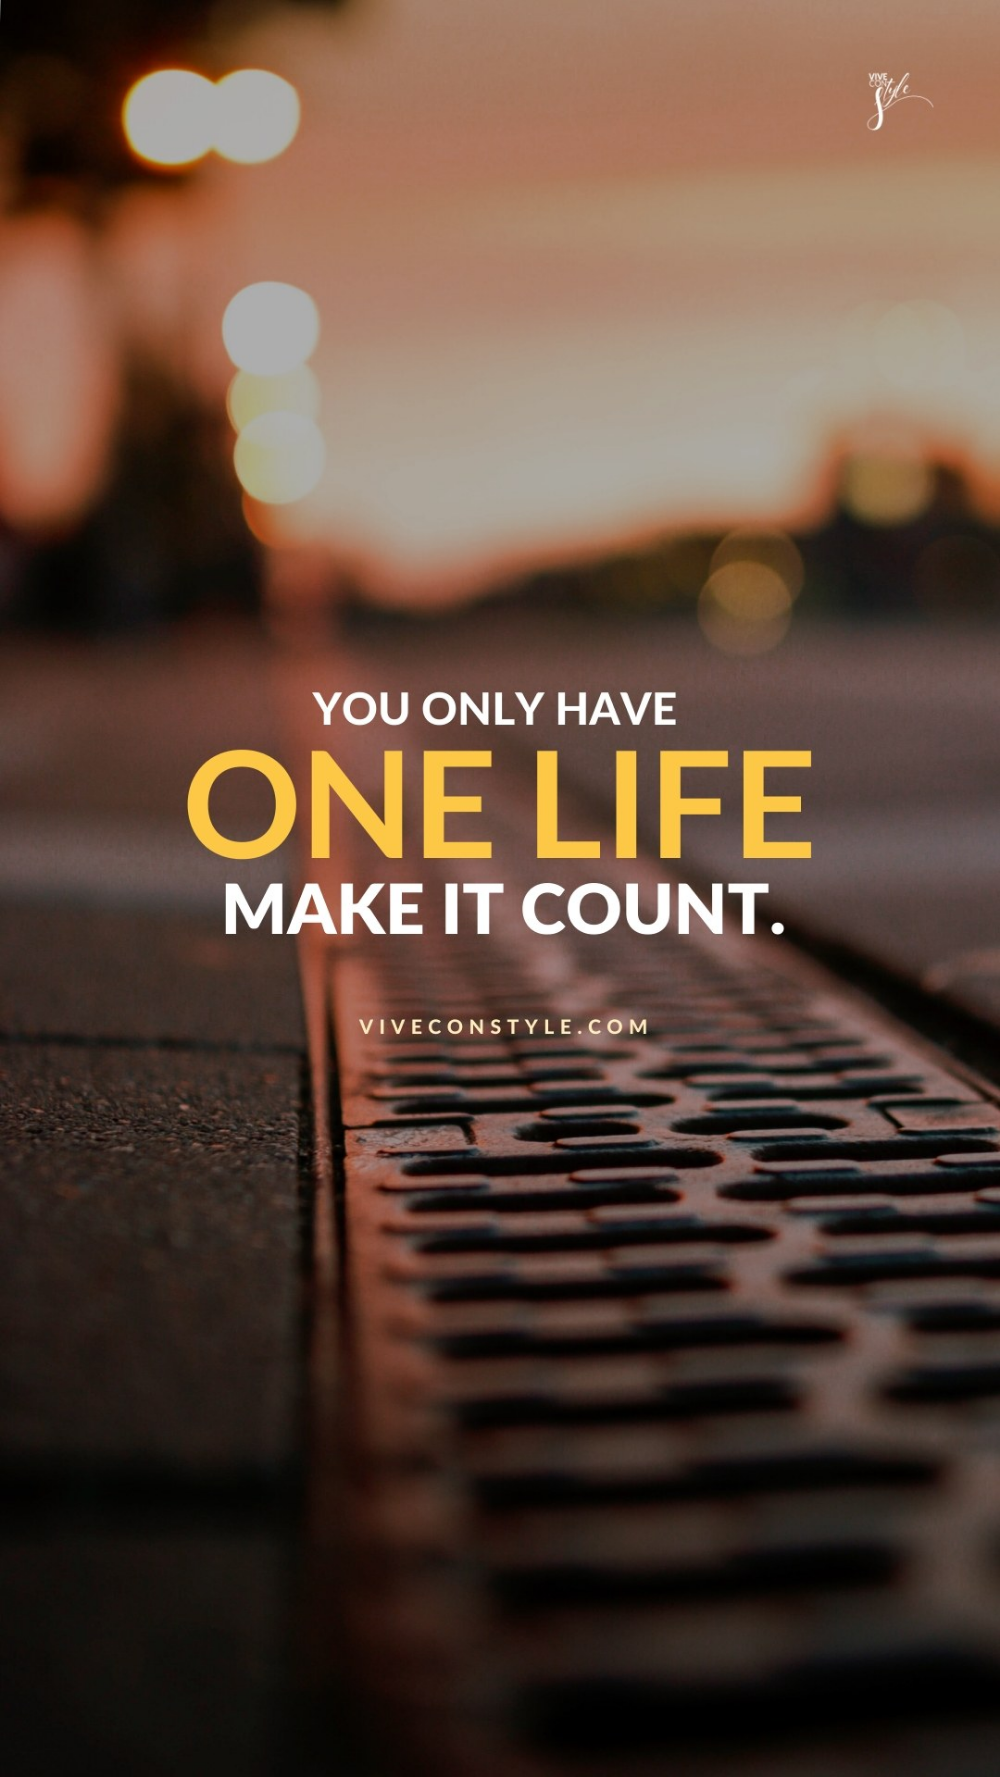 Make It Count Mobile Wallpaper Discipline Quotes Mobile Wallpaper Android Inspirational Phone Wallpaper